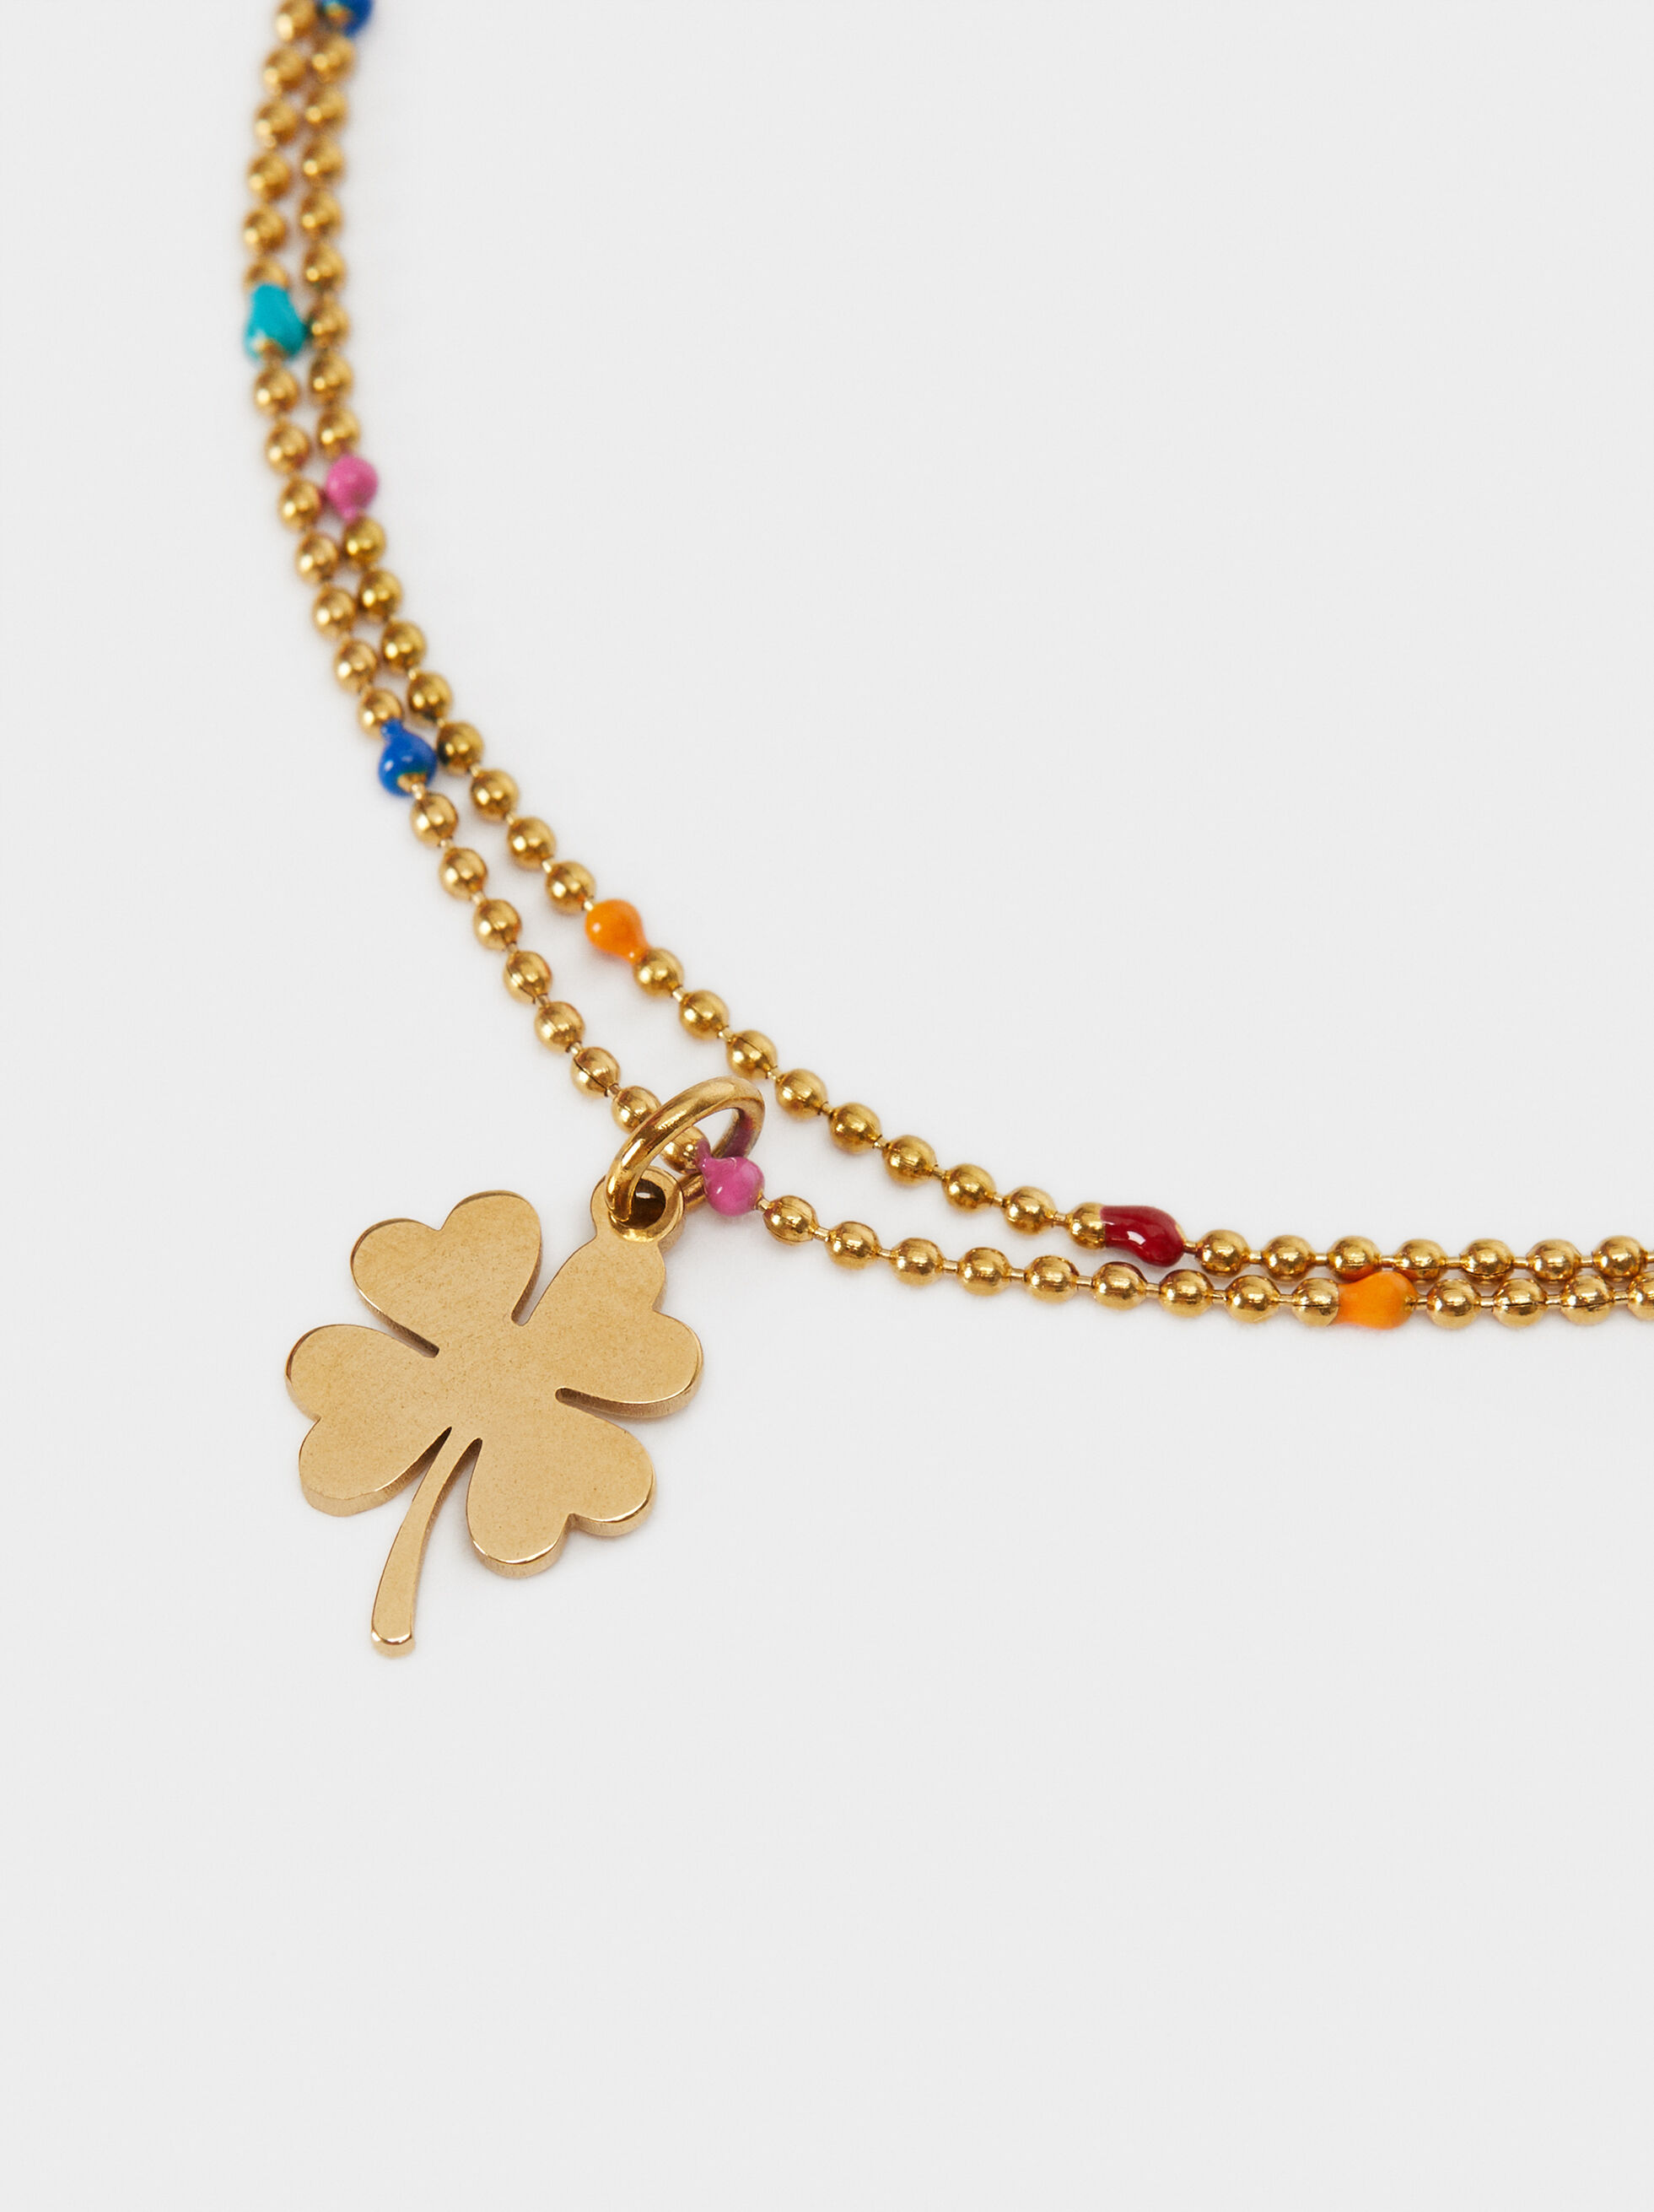 Stainless Steel Bracelet With Multi-Coloured Clover Leaves, Multicolor, hi-res